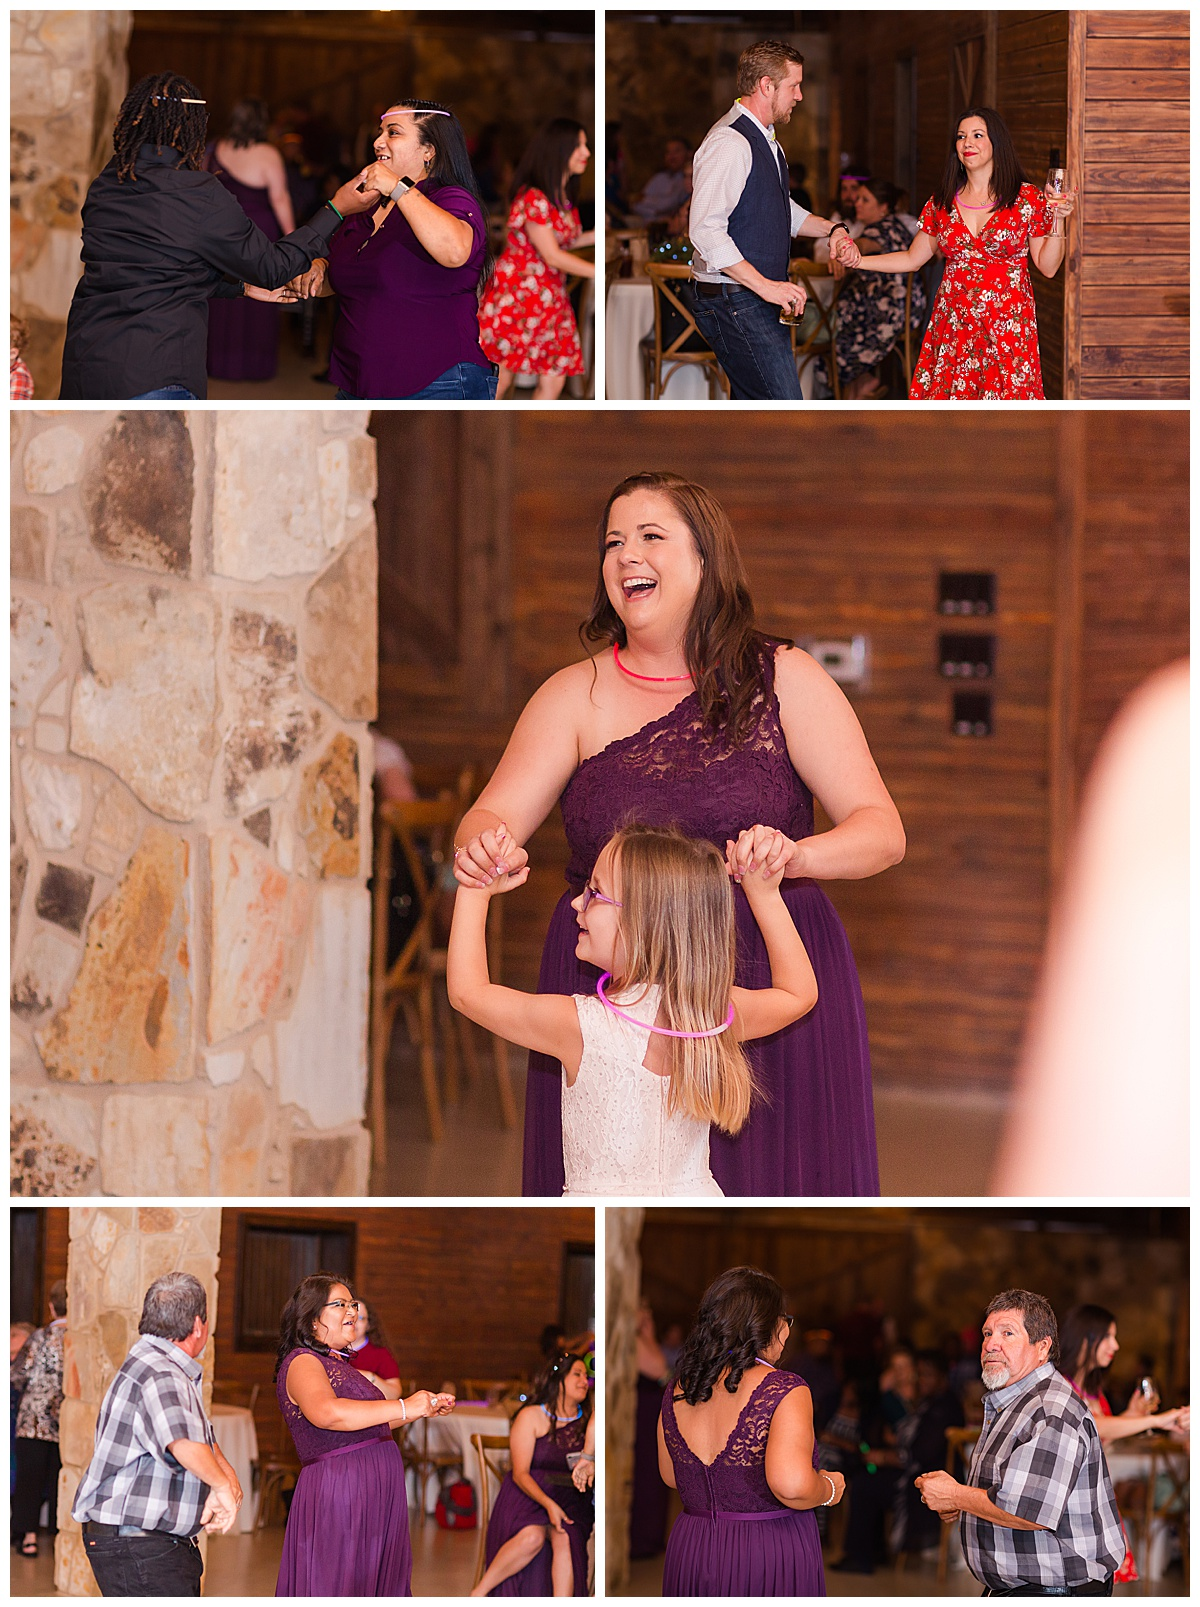 Texas-Magnolia-Bells-Rustic-Wedding-Carly-Barton-Photography_0012.jpg